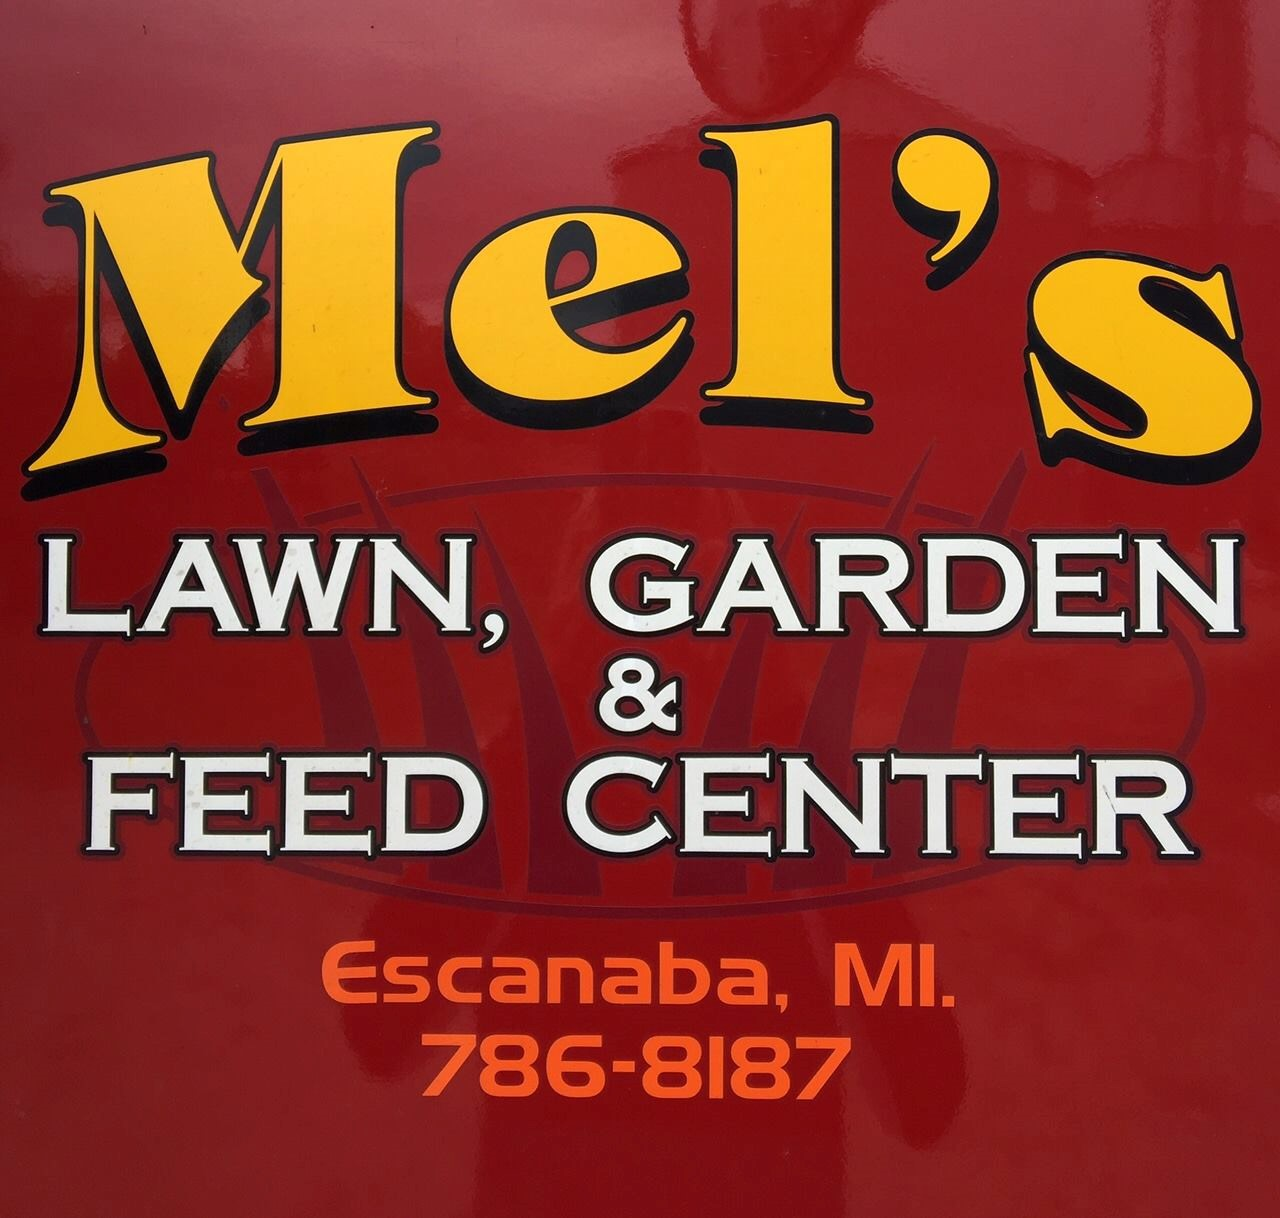 Mel's Lawn Garden & Feed Center